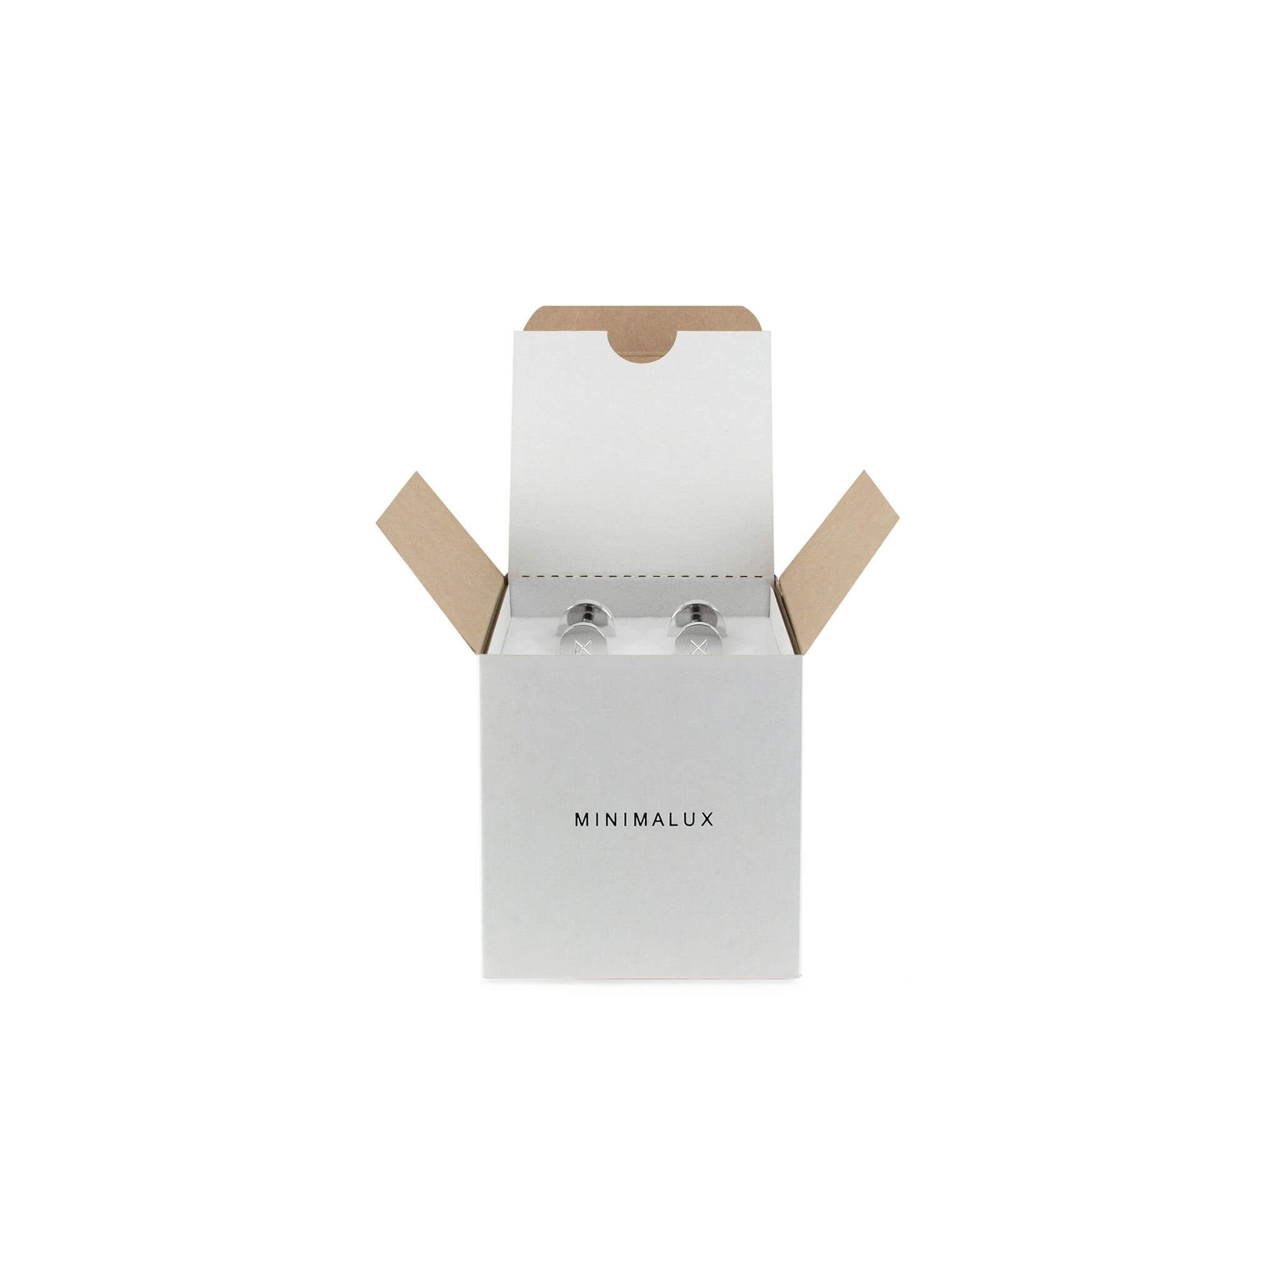 Palladium Cufflink packaging